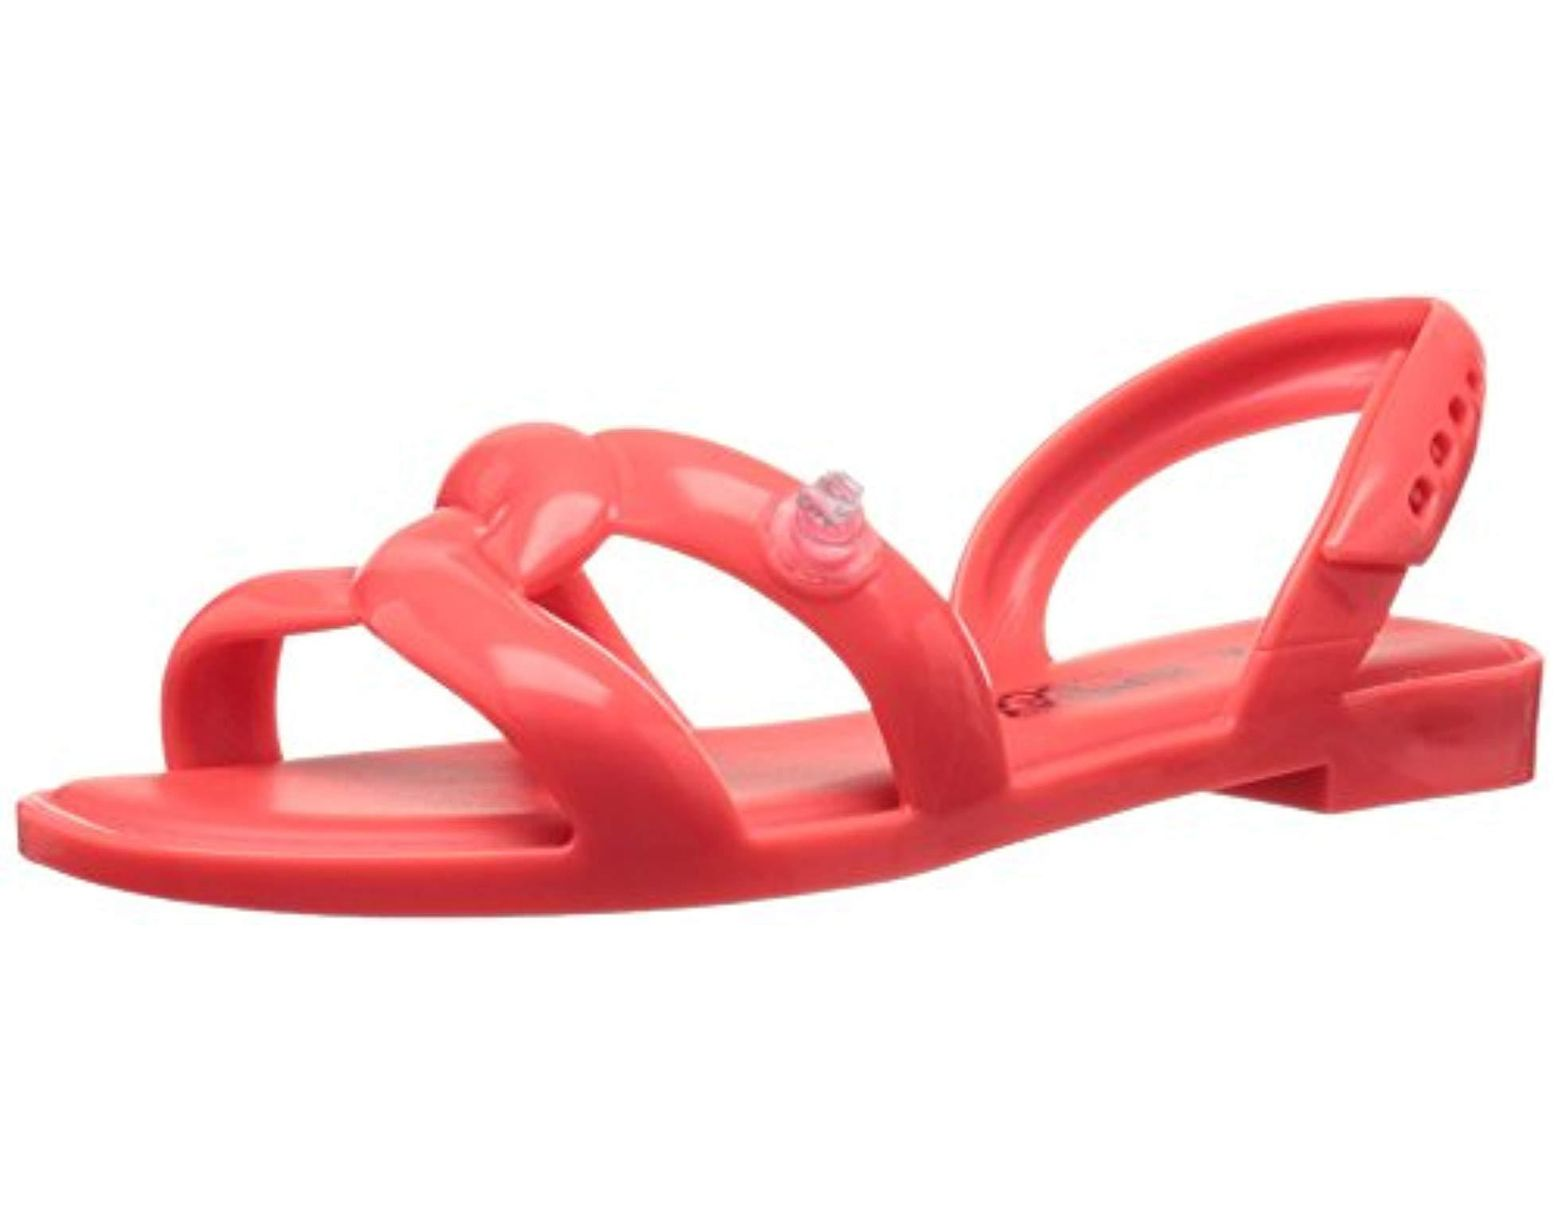 0ad547b4f81f Lyst - Melissa Tube Jeremy Scott Jelly Sandal in Red - Save 83%